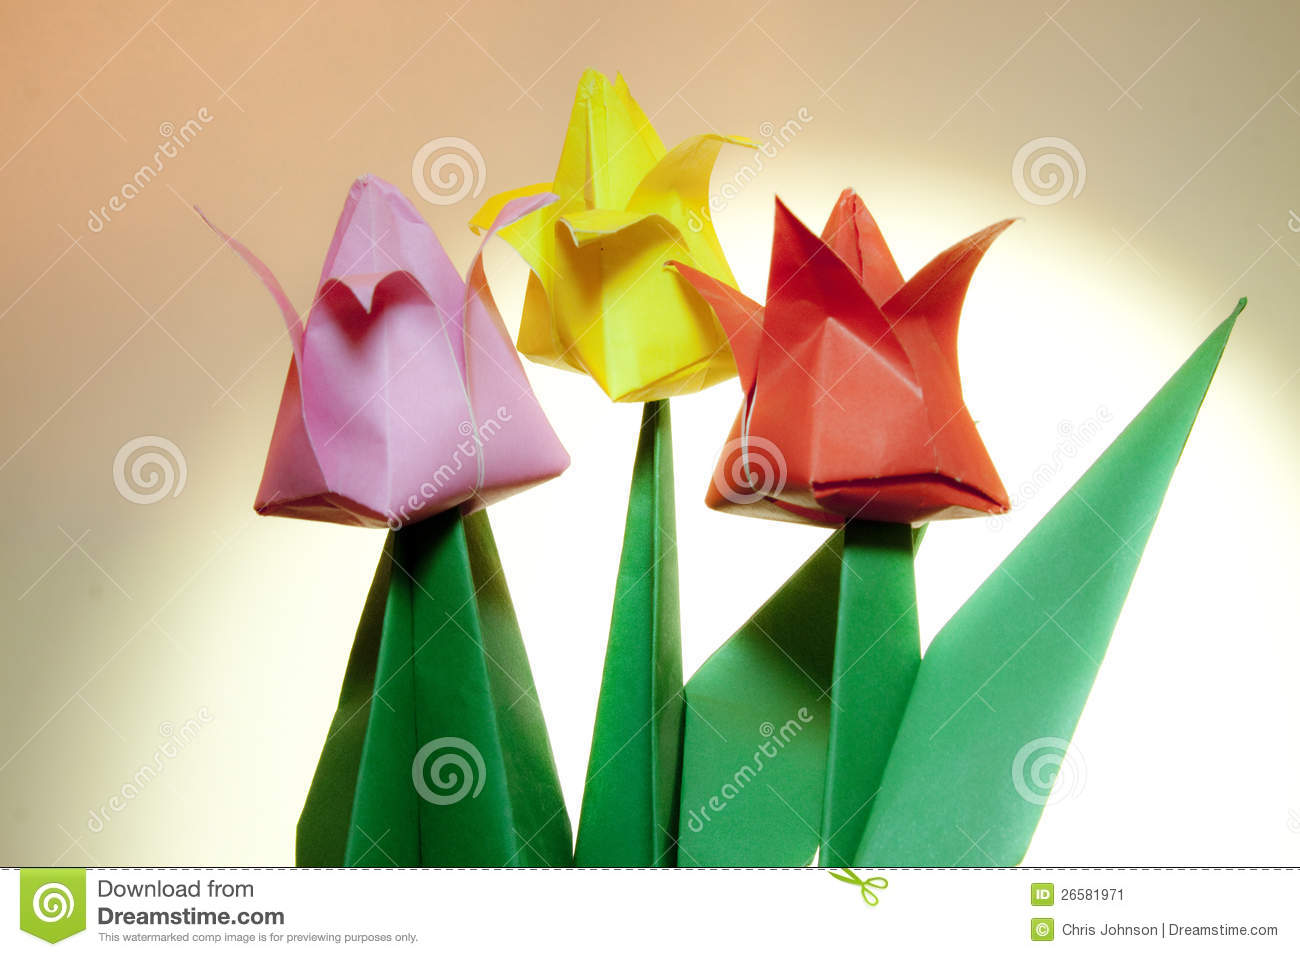 origami flower tulip tulip paper flowers stock image image of easter crafting 2581